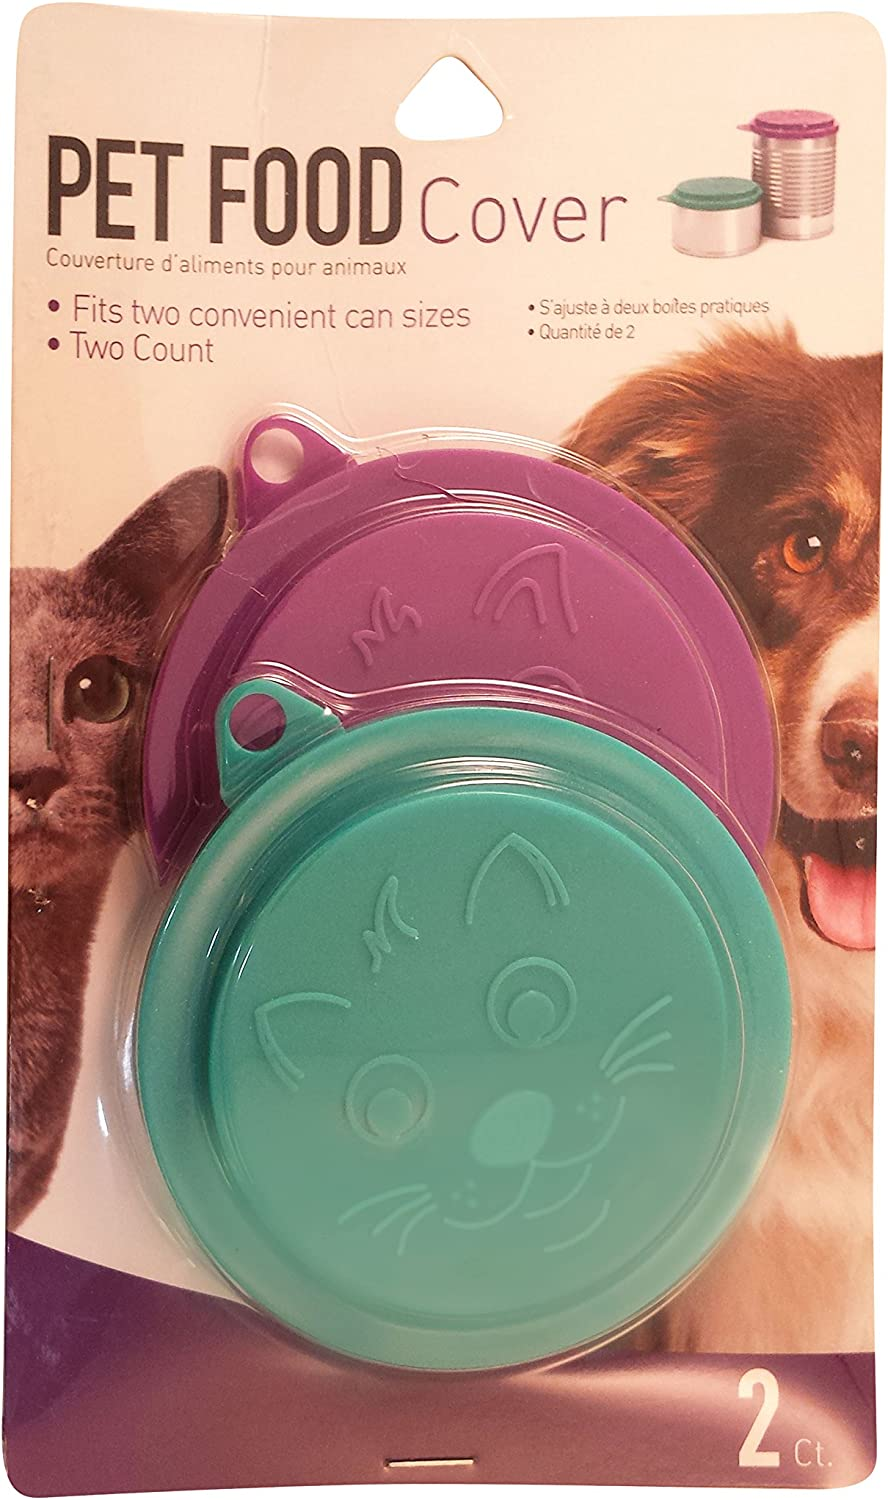 Set ofGood Living Set of 2 Pet Food Covers Meaure Inner Ring 3 Inch, Outer Ring 3.5 Inches